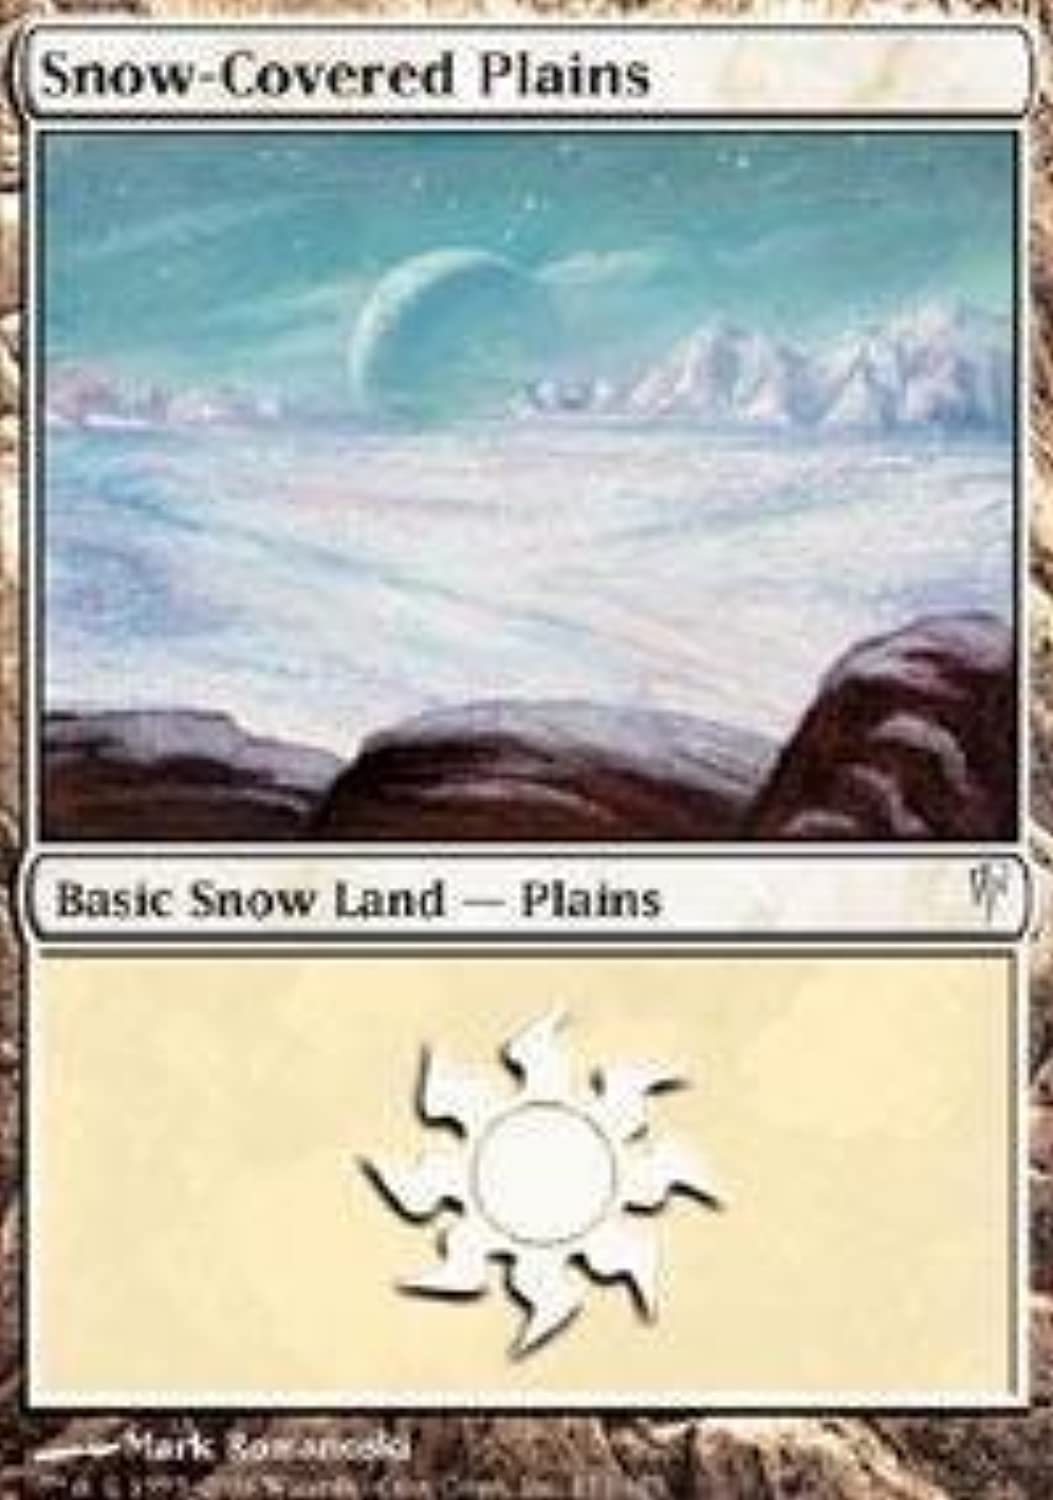 entrega gratis Magic  the Gathering - - - Snow-Coverojo Plains - Coldsnap - Foil by Magic  the Gathering  mas preferencial